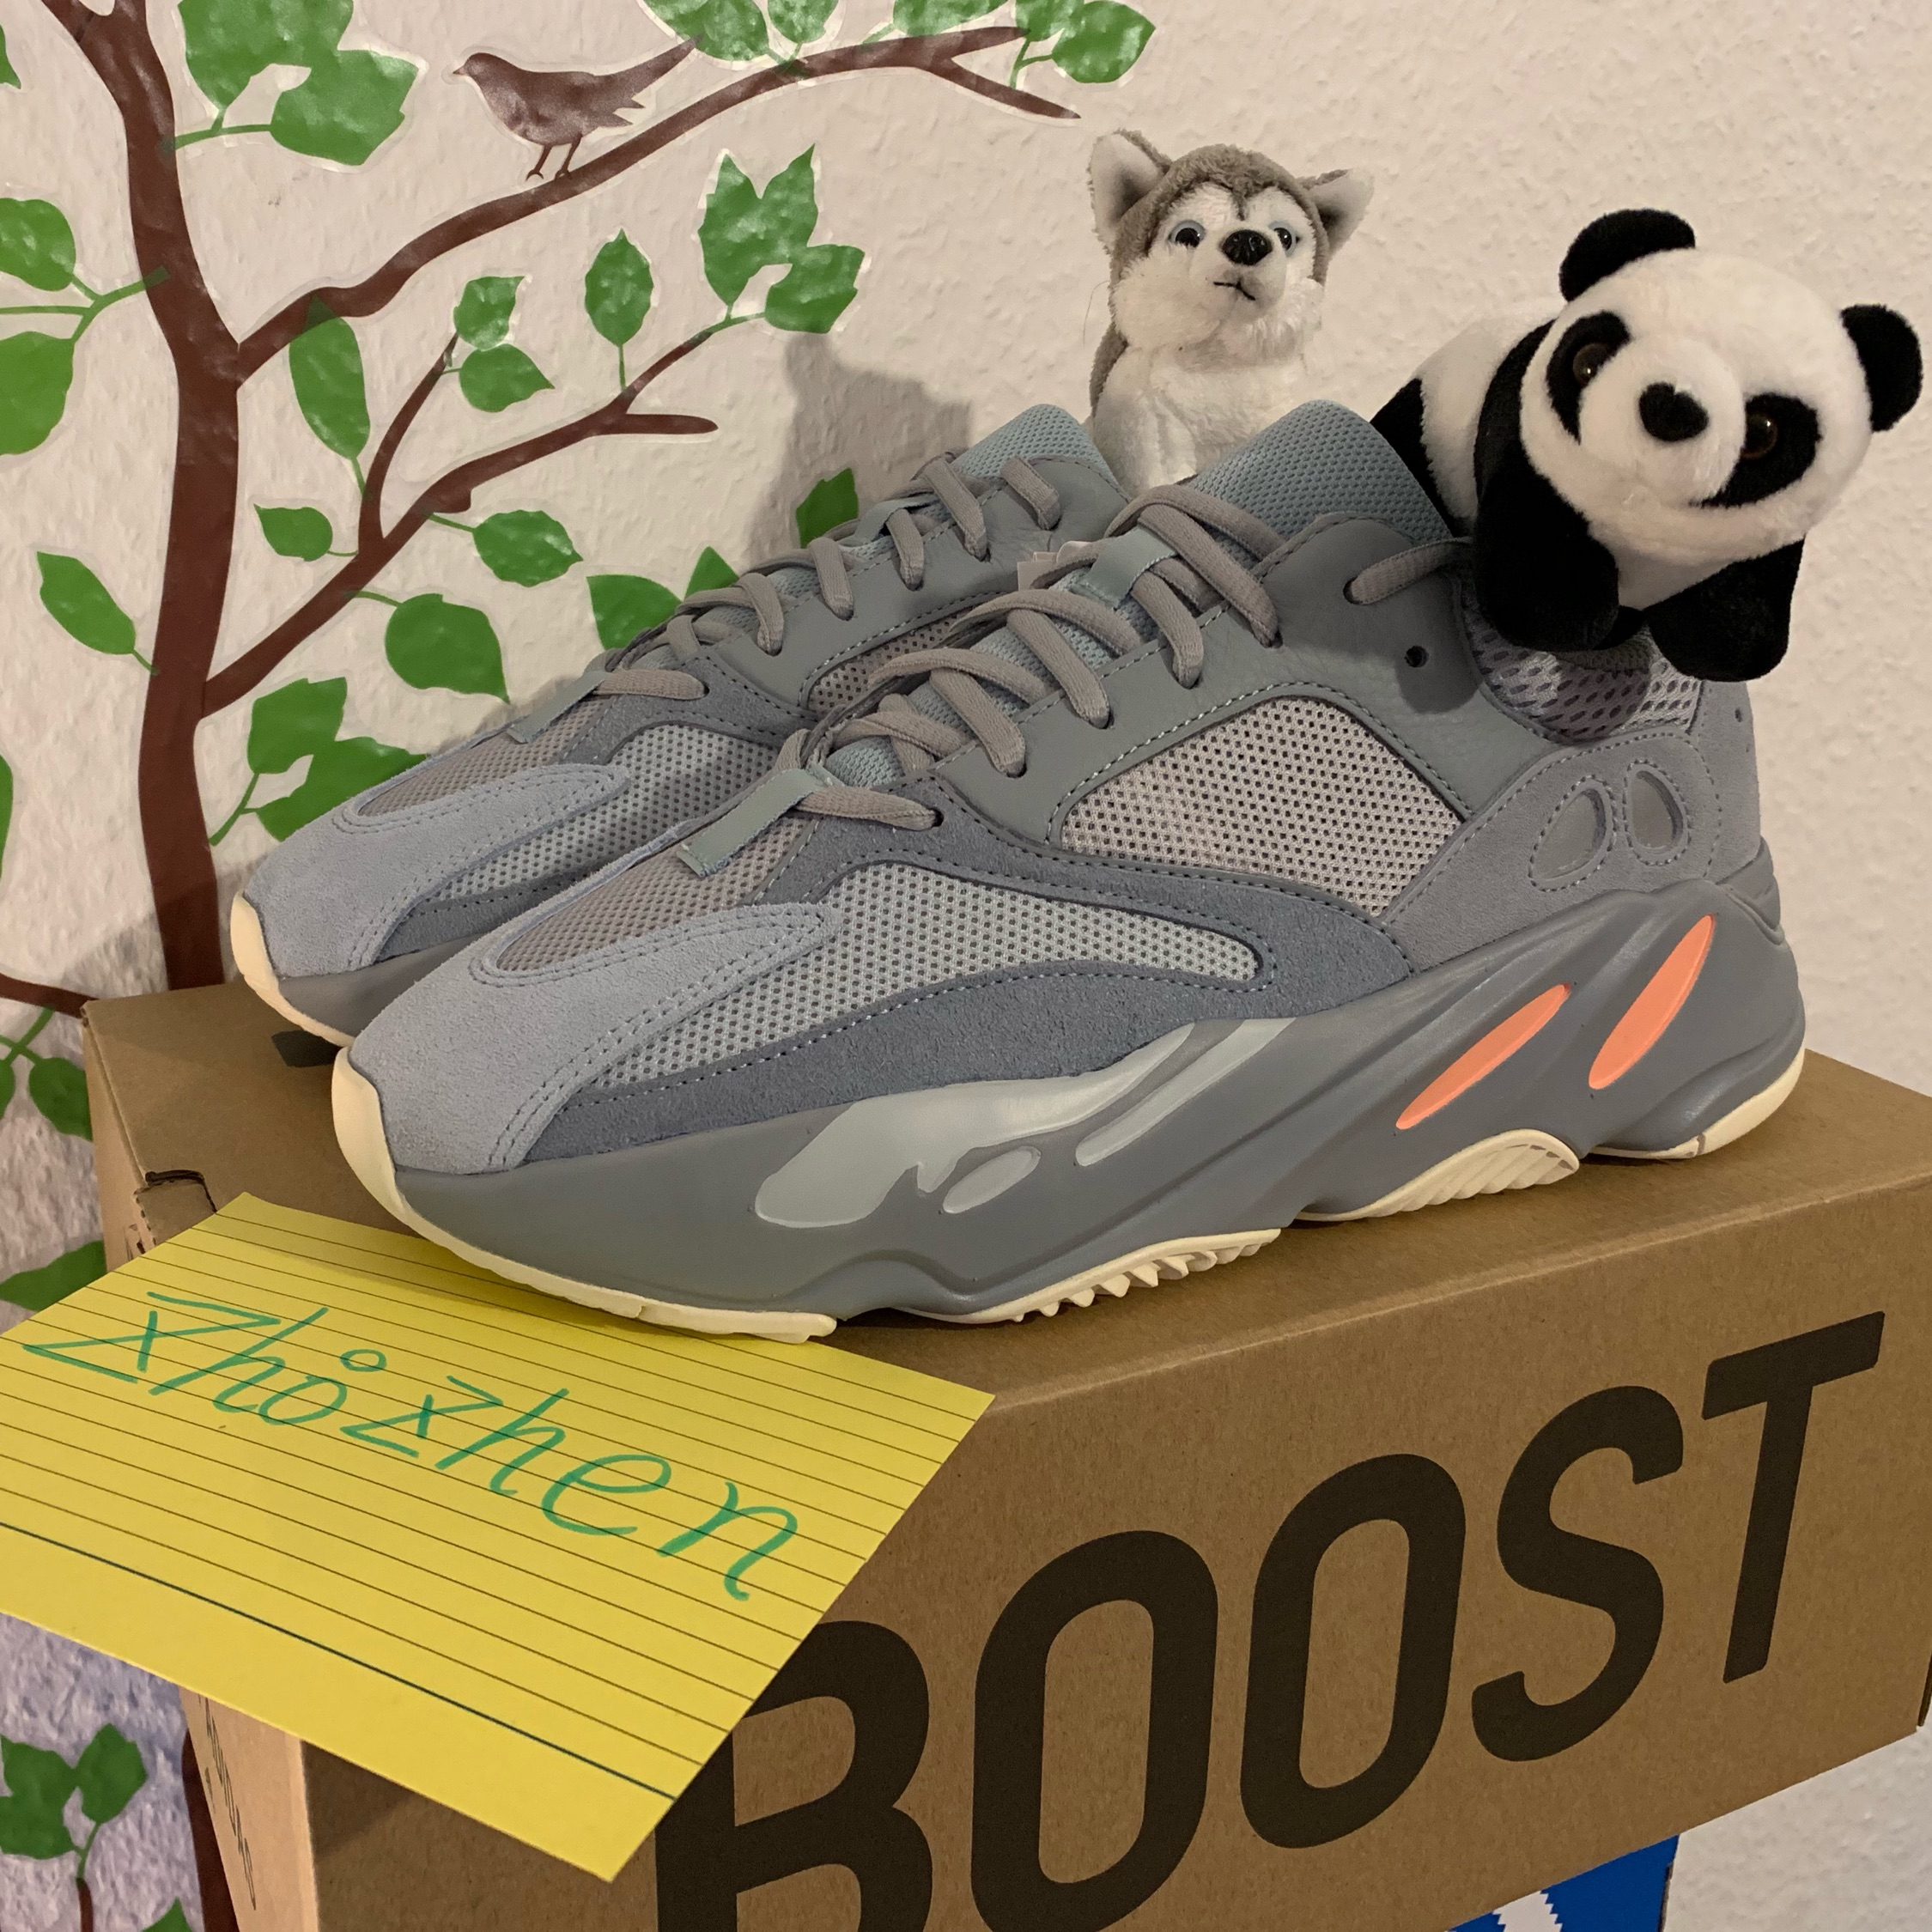 separation shoes 3f383 cc72f Yeezy 700 Inertia Us9 Eur42 2/3